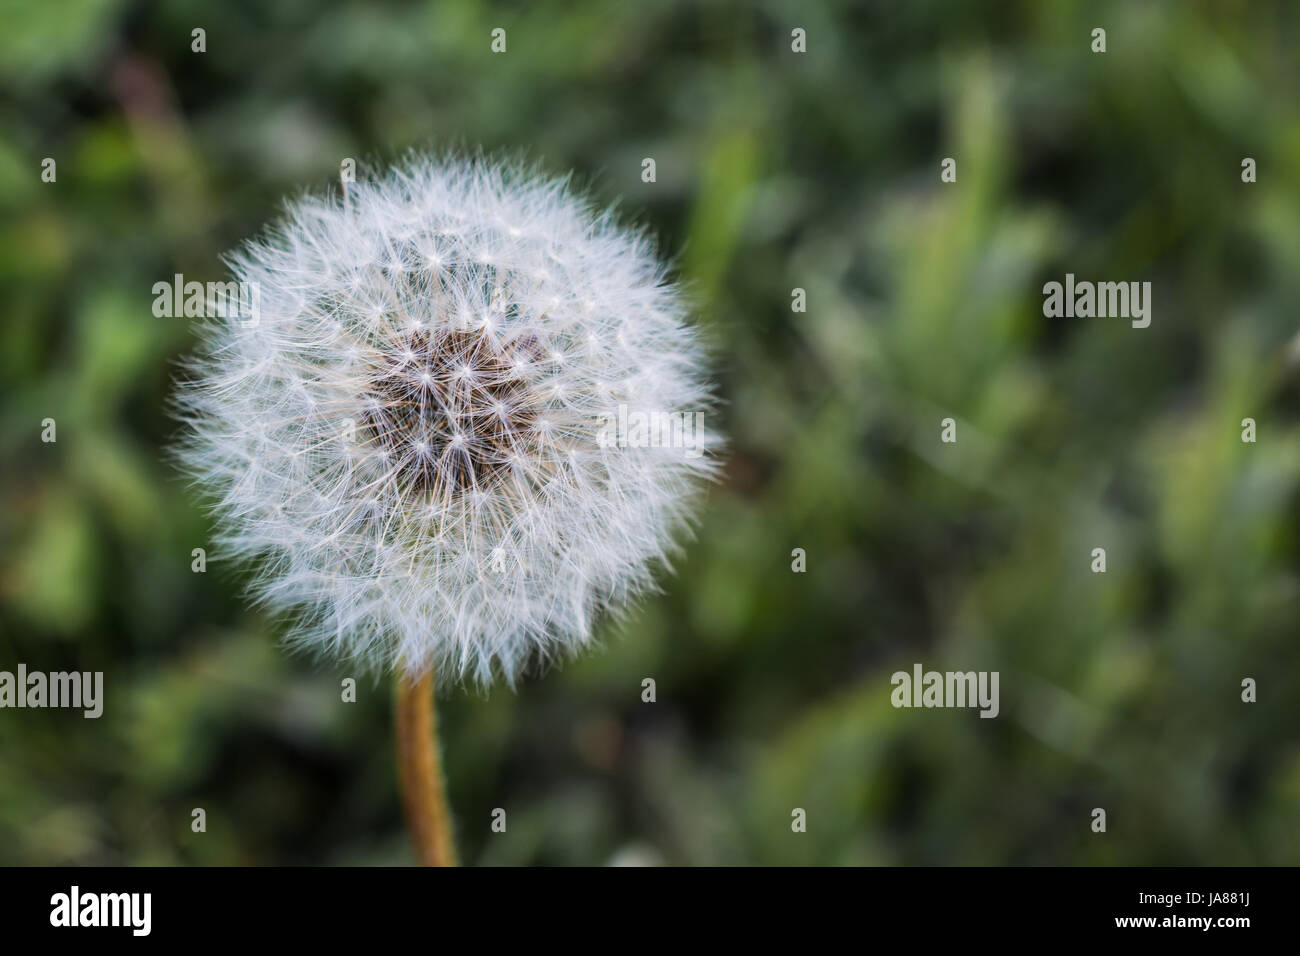 Dandelion Gone to Seed - Stock Image